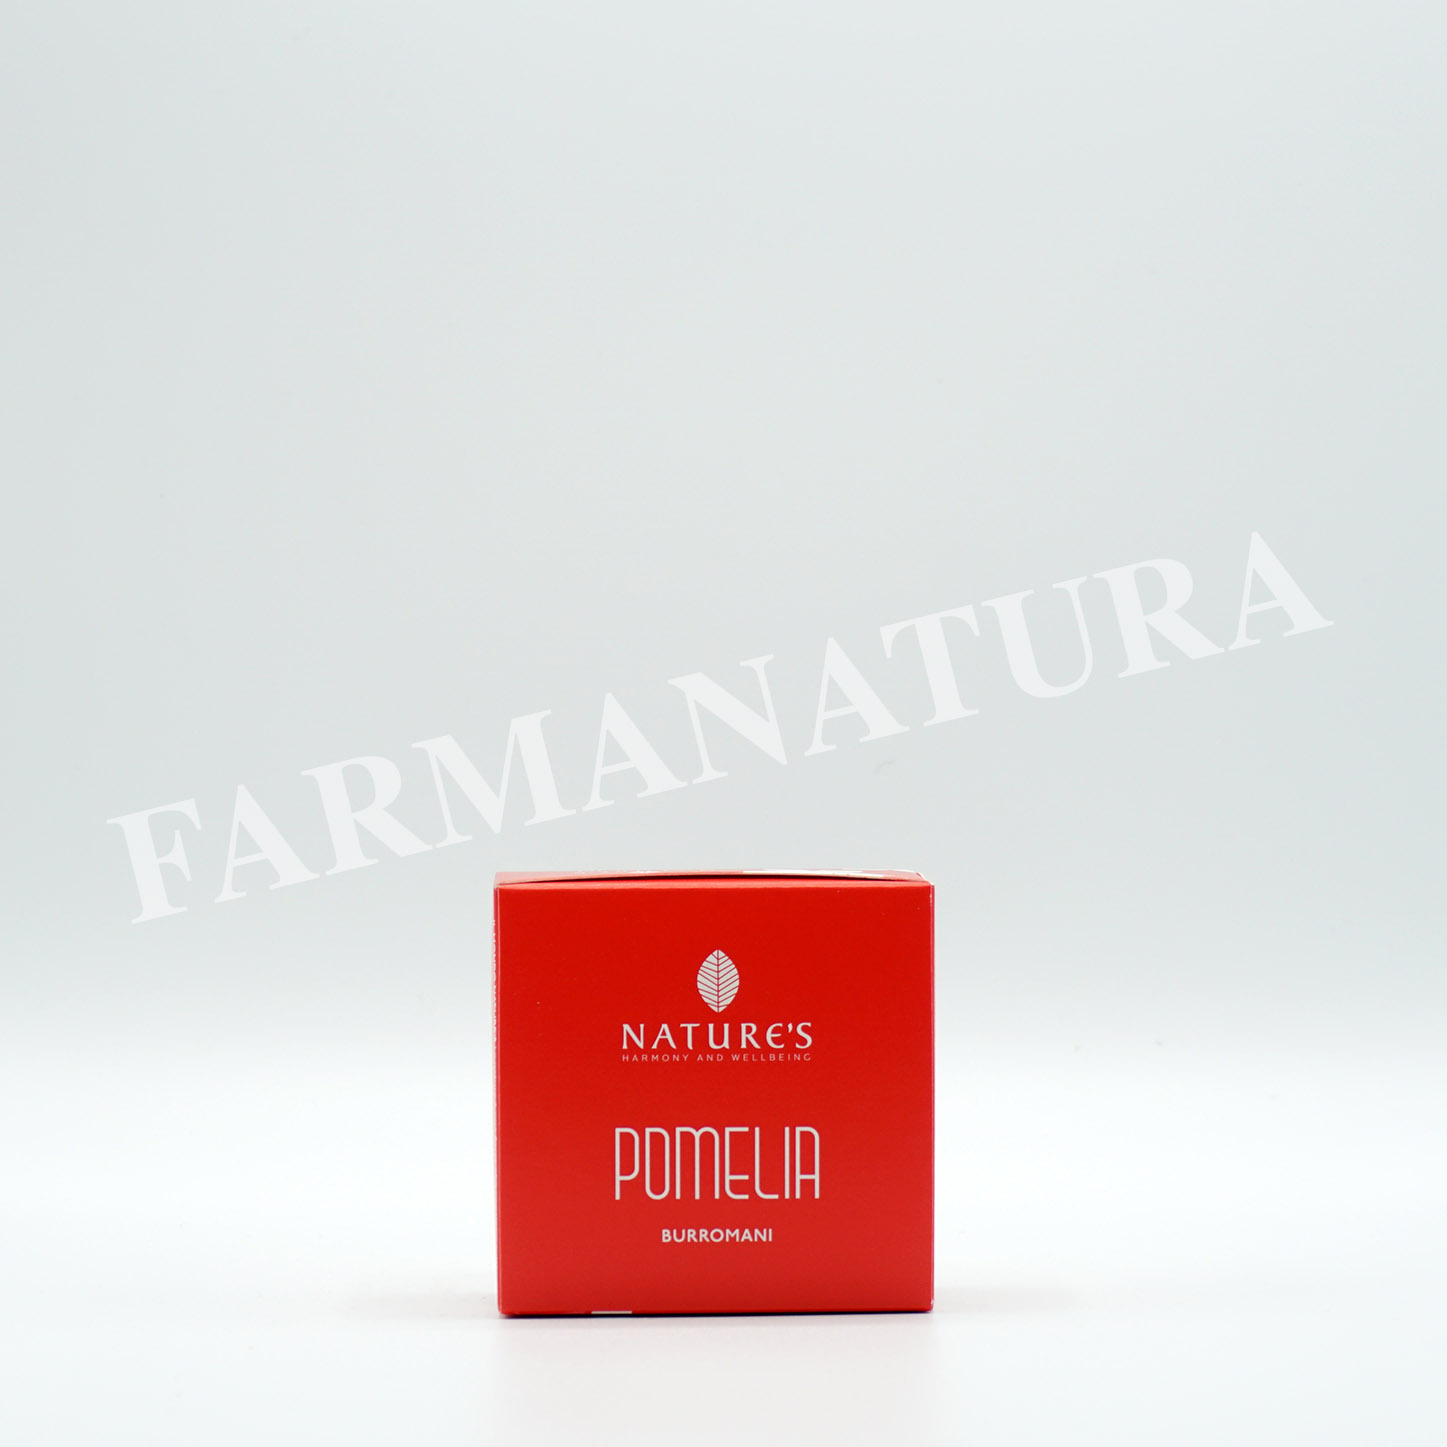 Pomelia Burromani 50 Ml Nature'S